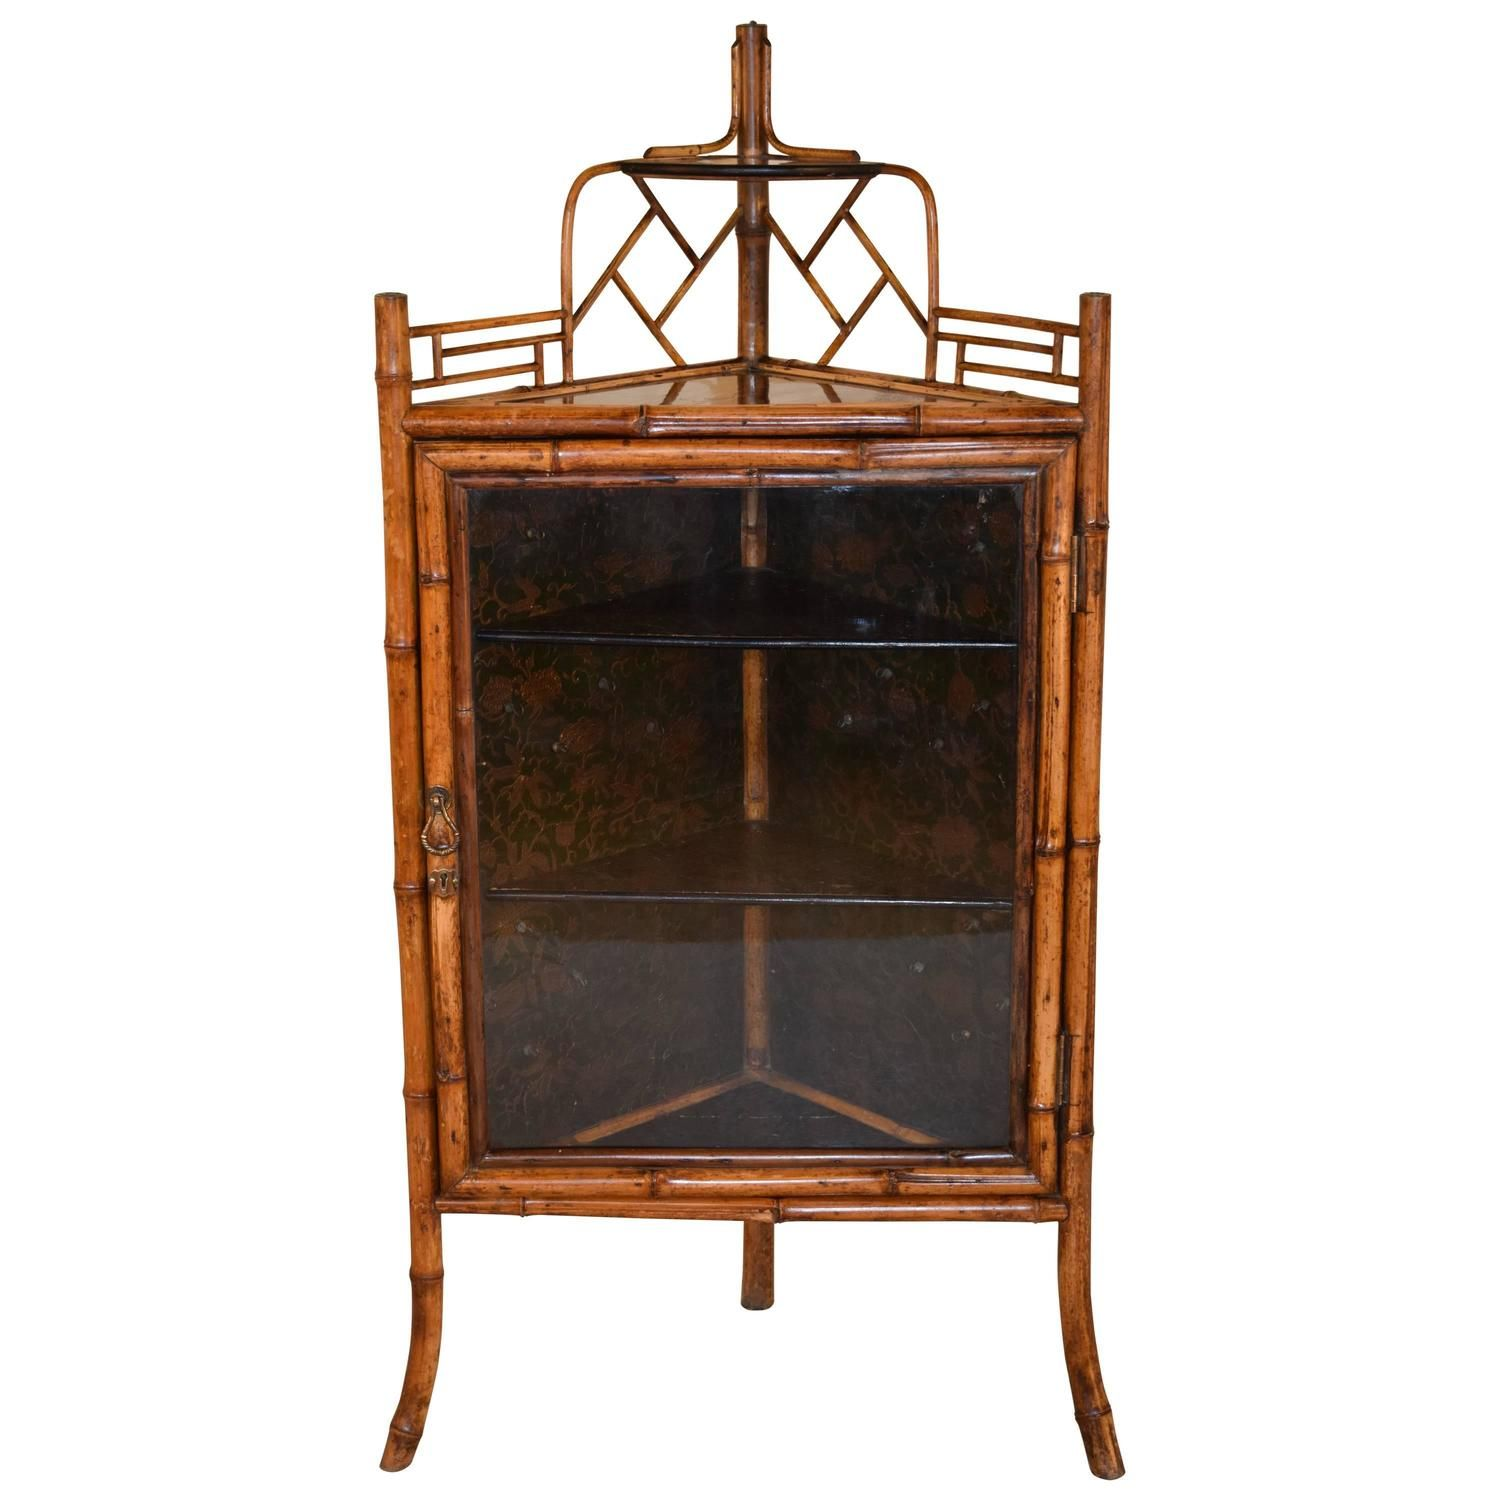 Bon 19th Century French Bamboo Corner Cabinet For Sale At 1stdibs